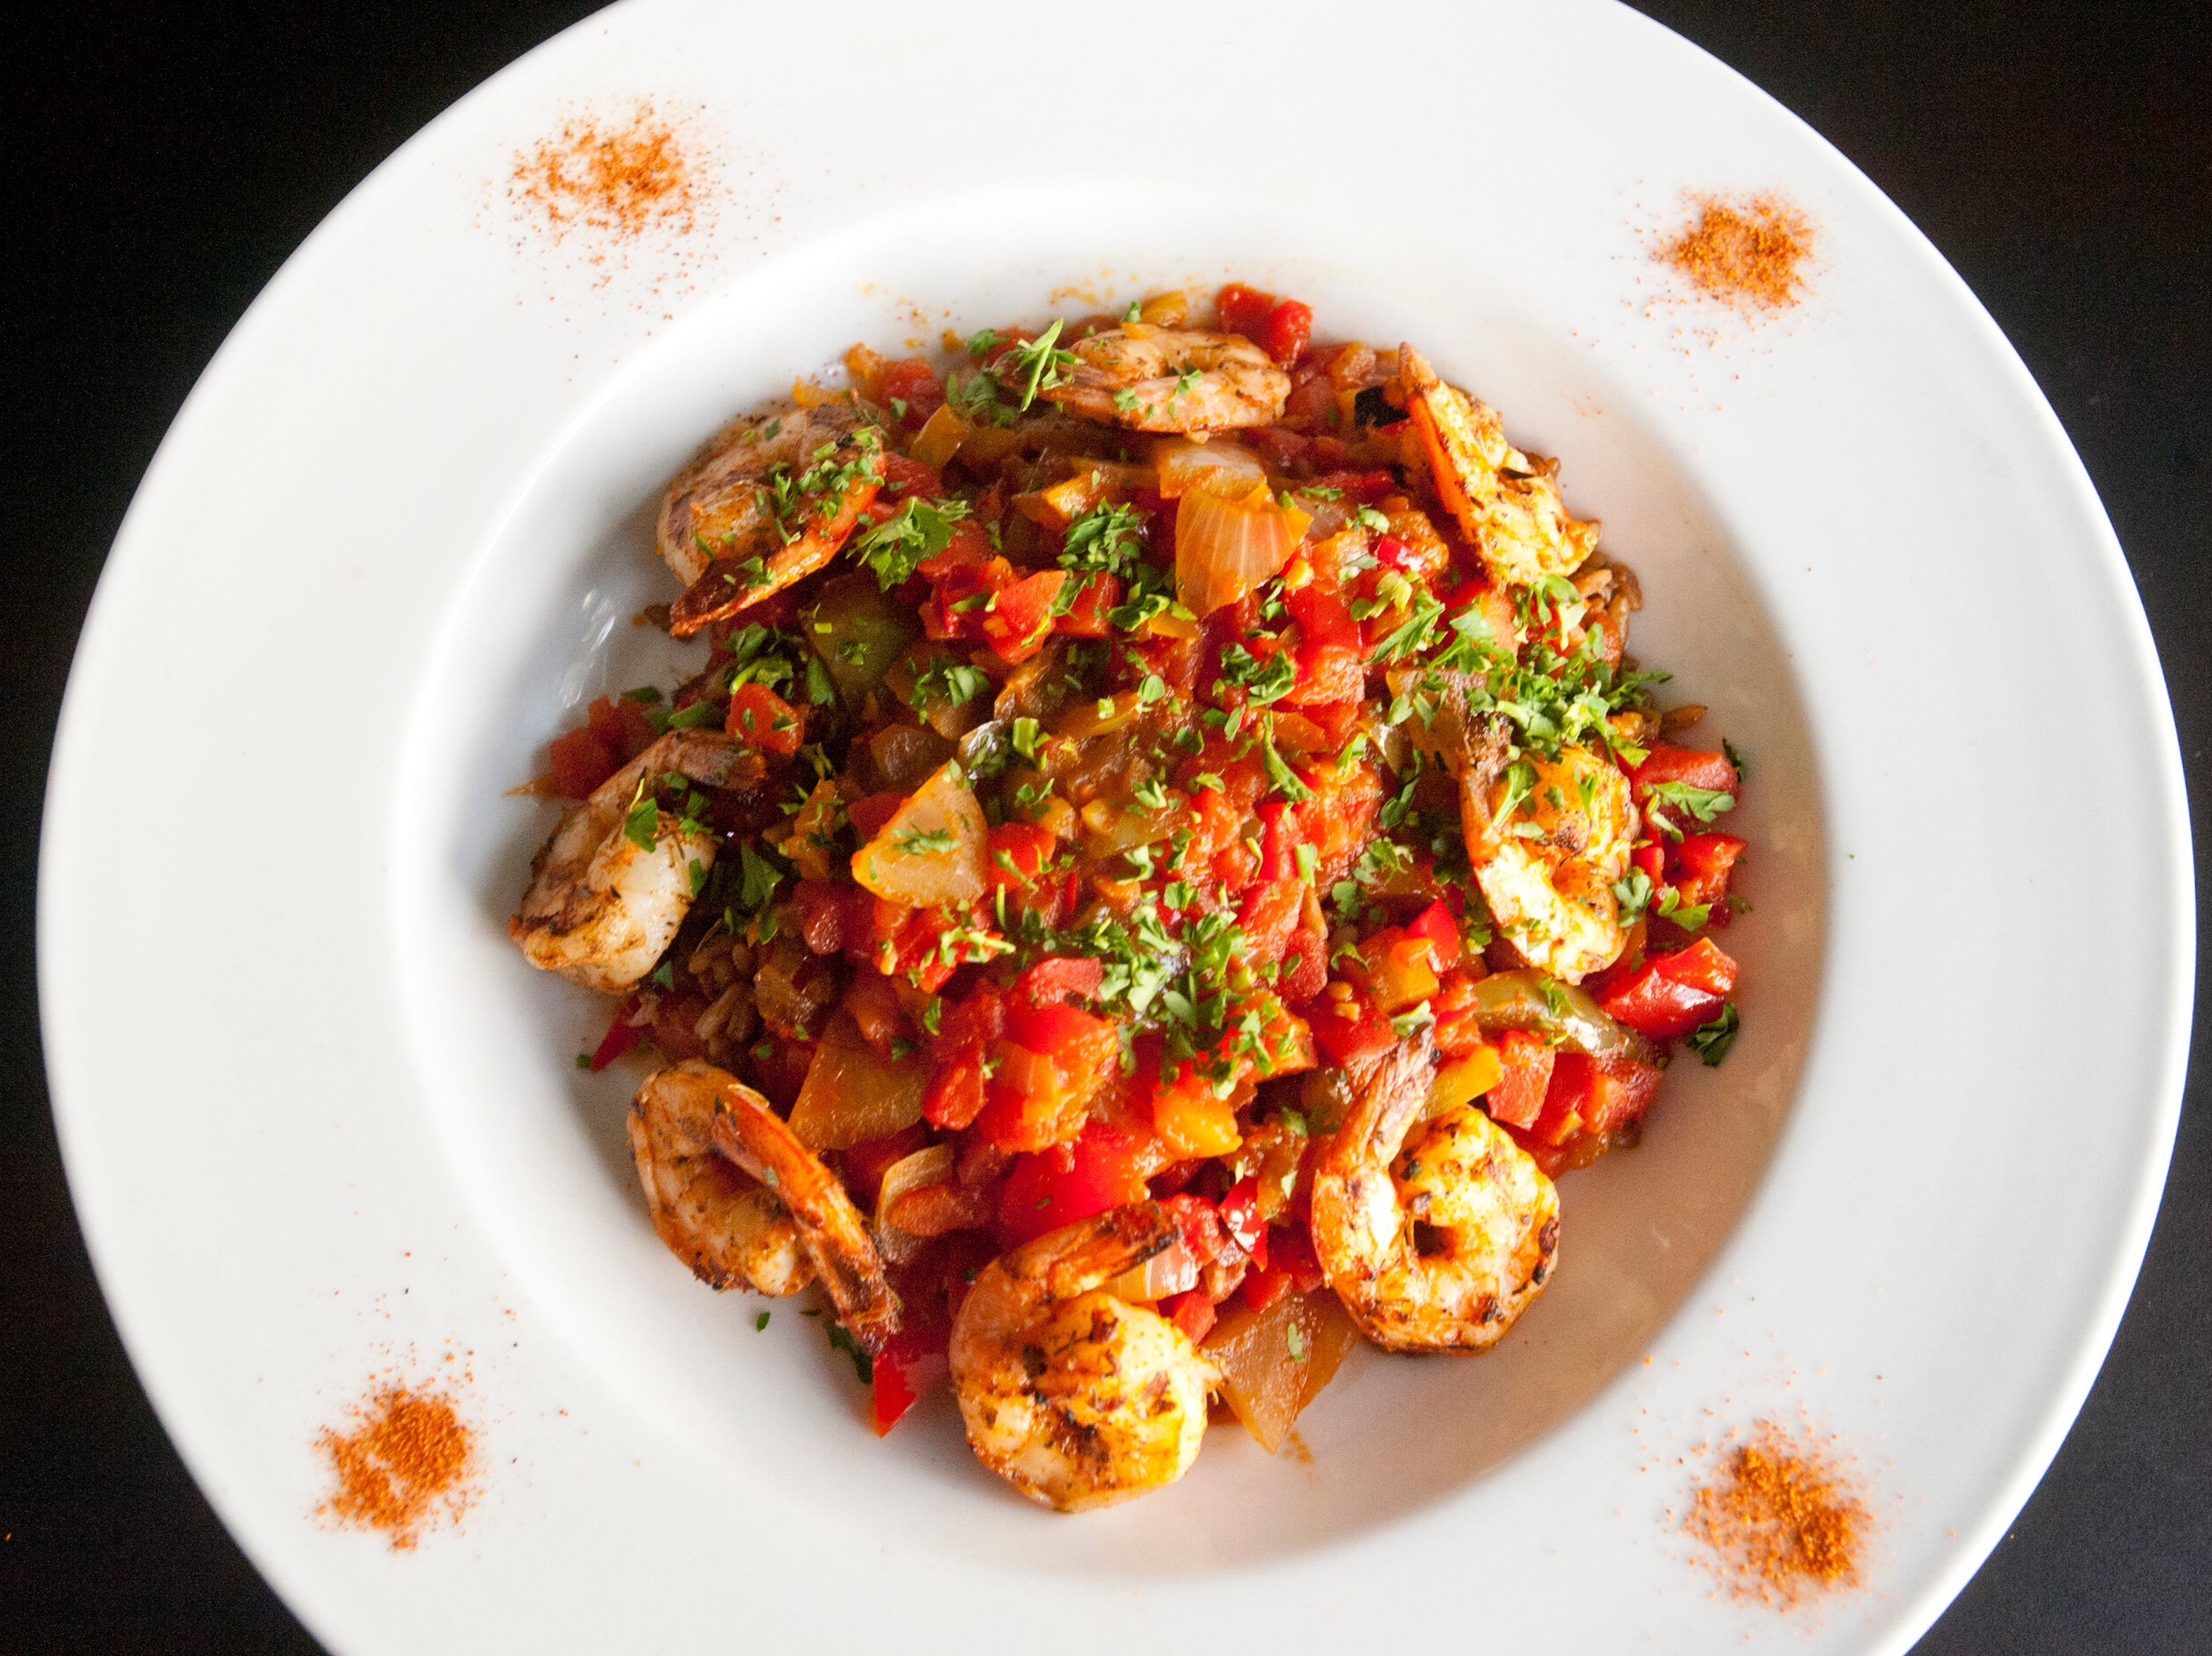 The Flavour Restaurant's shrimp creole is made with pan seared gulf shrimp atop onions, peppers and a spiced creole roux then finished with tomatoes, served over rice. November 08, 2018